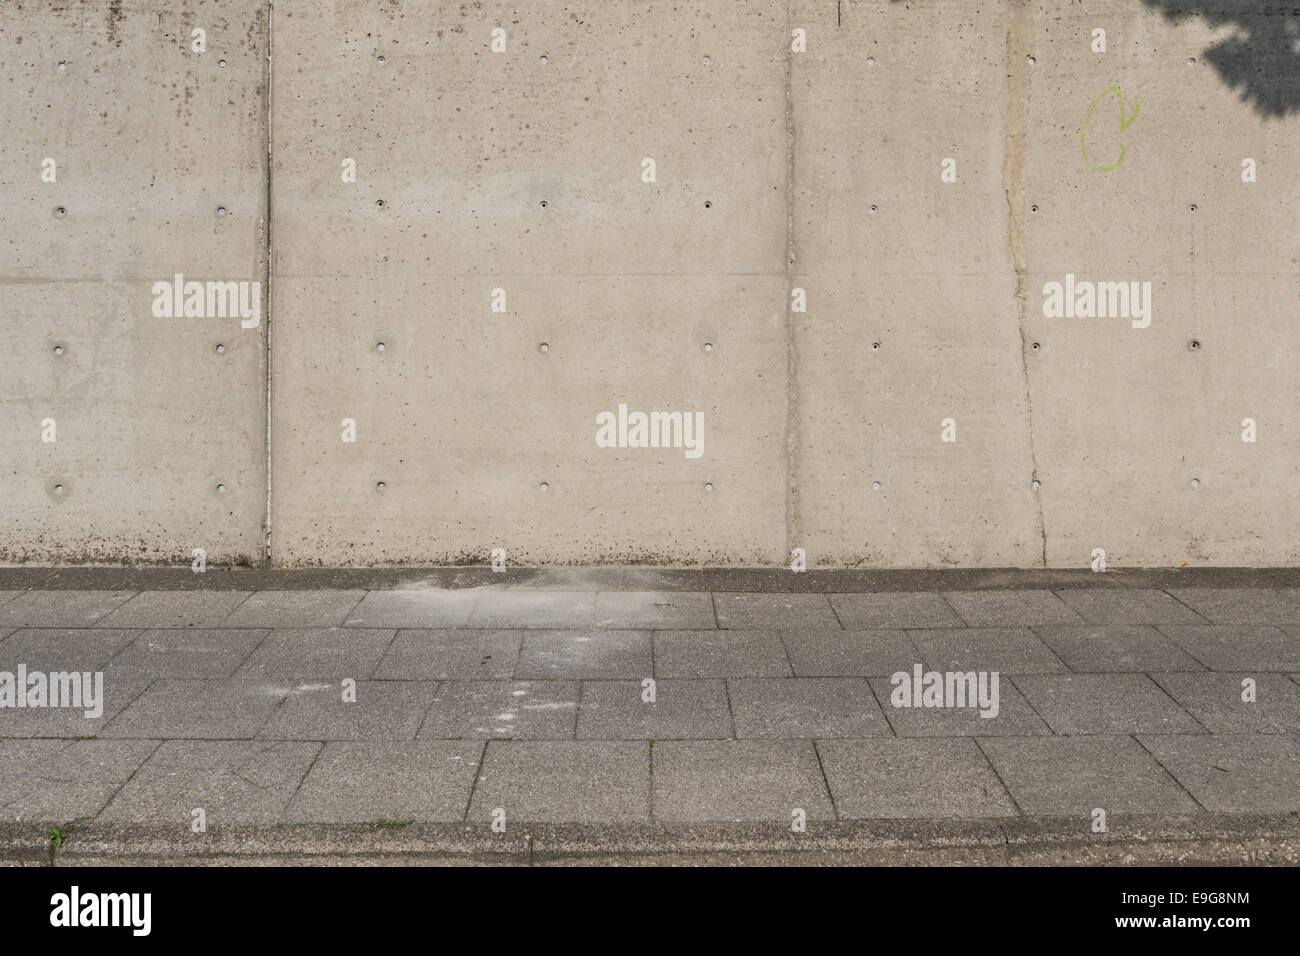 Large concrete wall with sideway in front - Stock Image